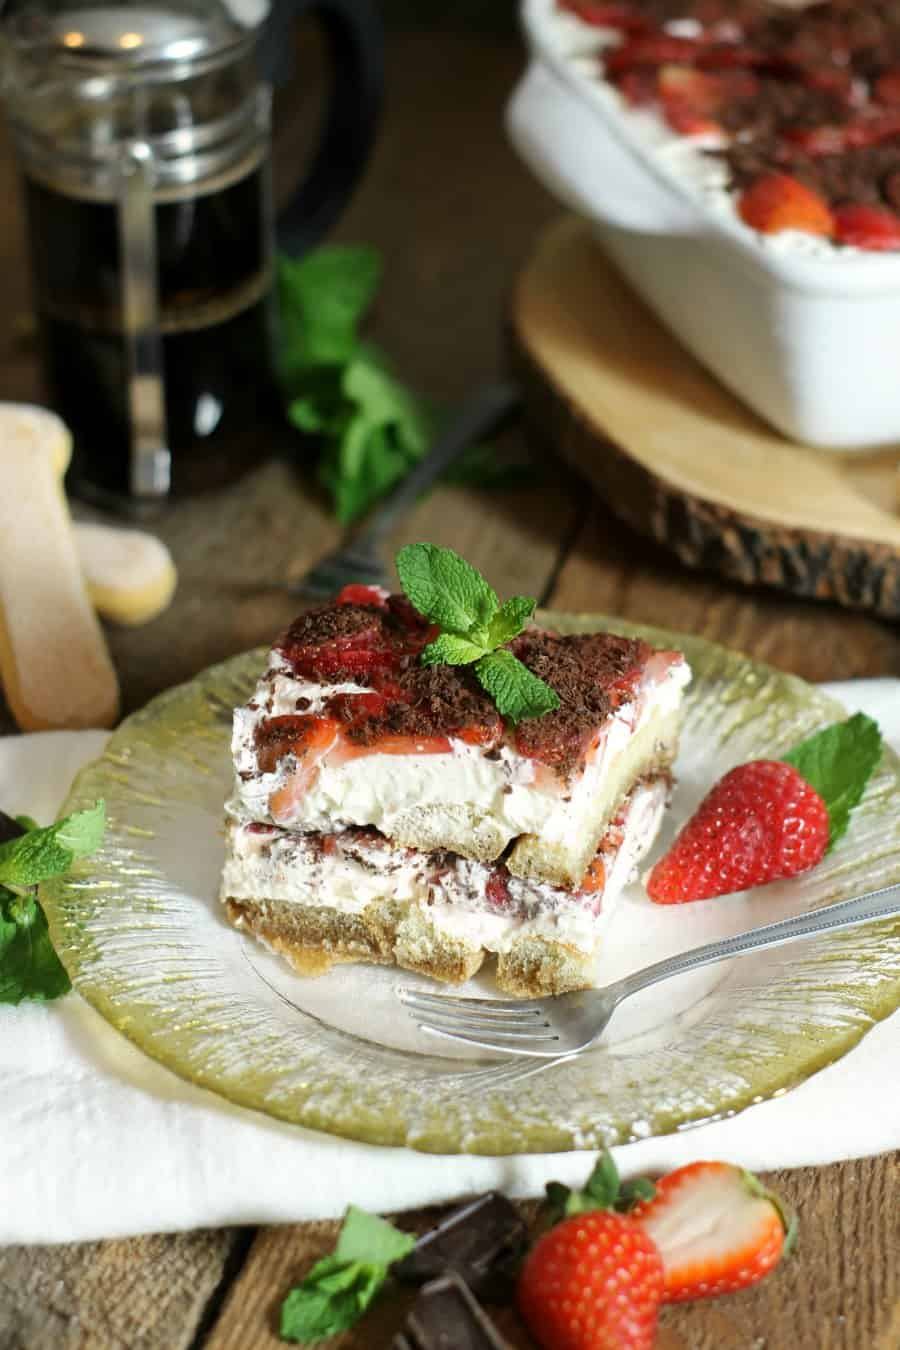 Strawberry Tiramisu with Dark Chocolate from Earth Food and Fire